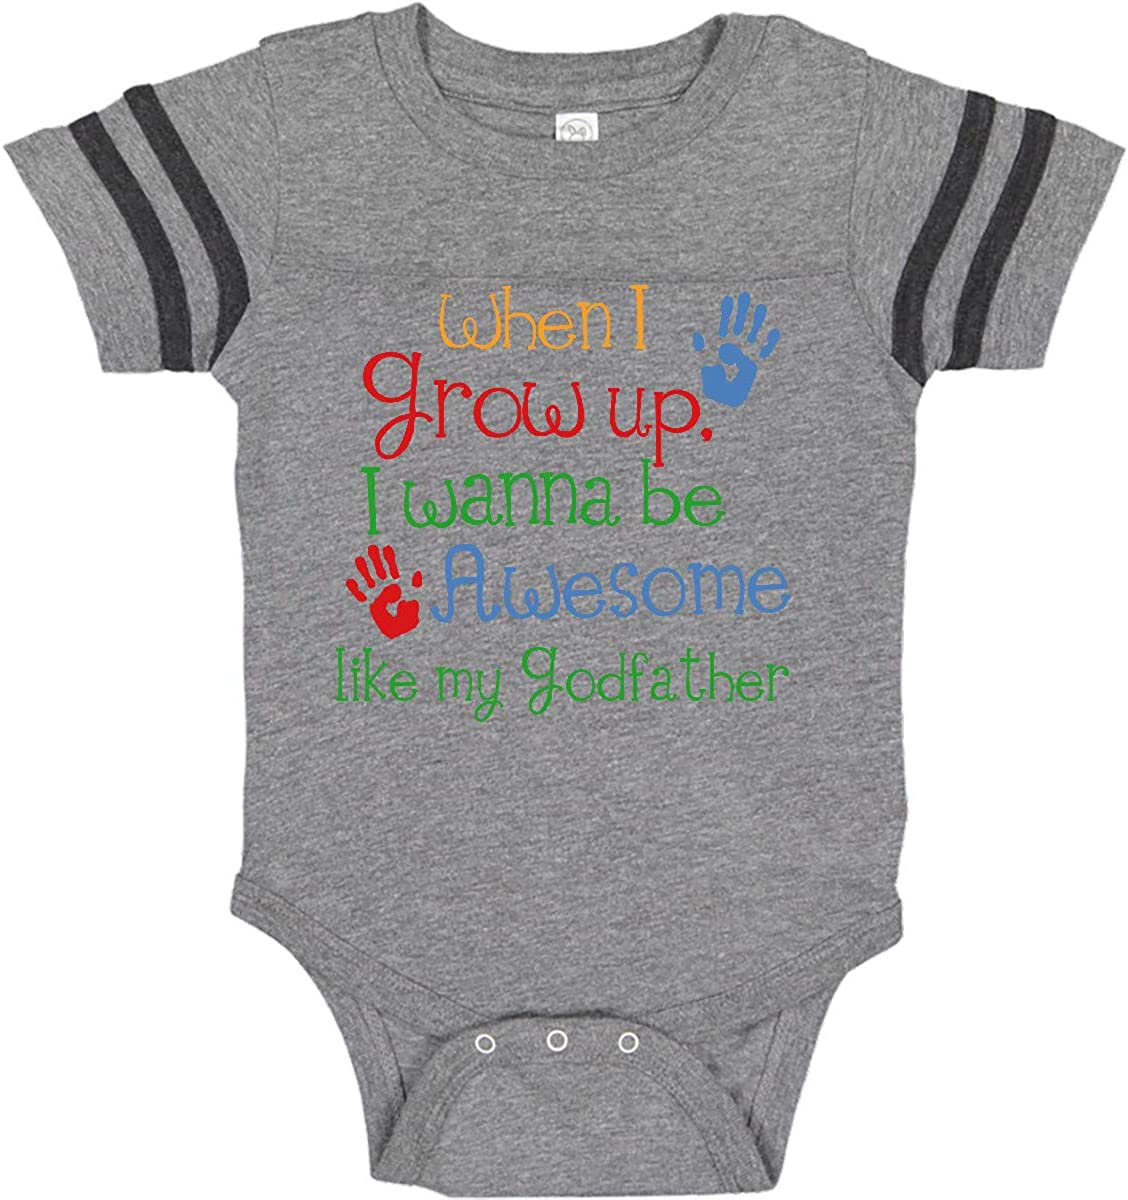 Onlybabycare My Awesome Godfather 100/% Cotton Toddler Baby Boys Girls Kids Short Sleeve T Shirt Top Tee Clothes 2-6 T